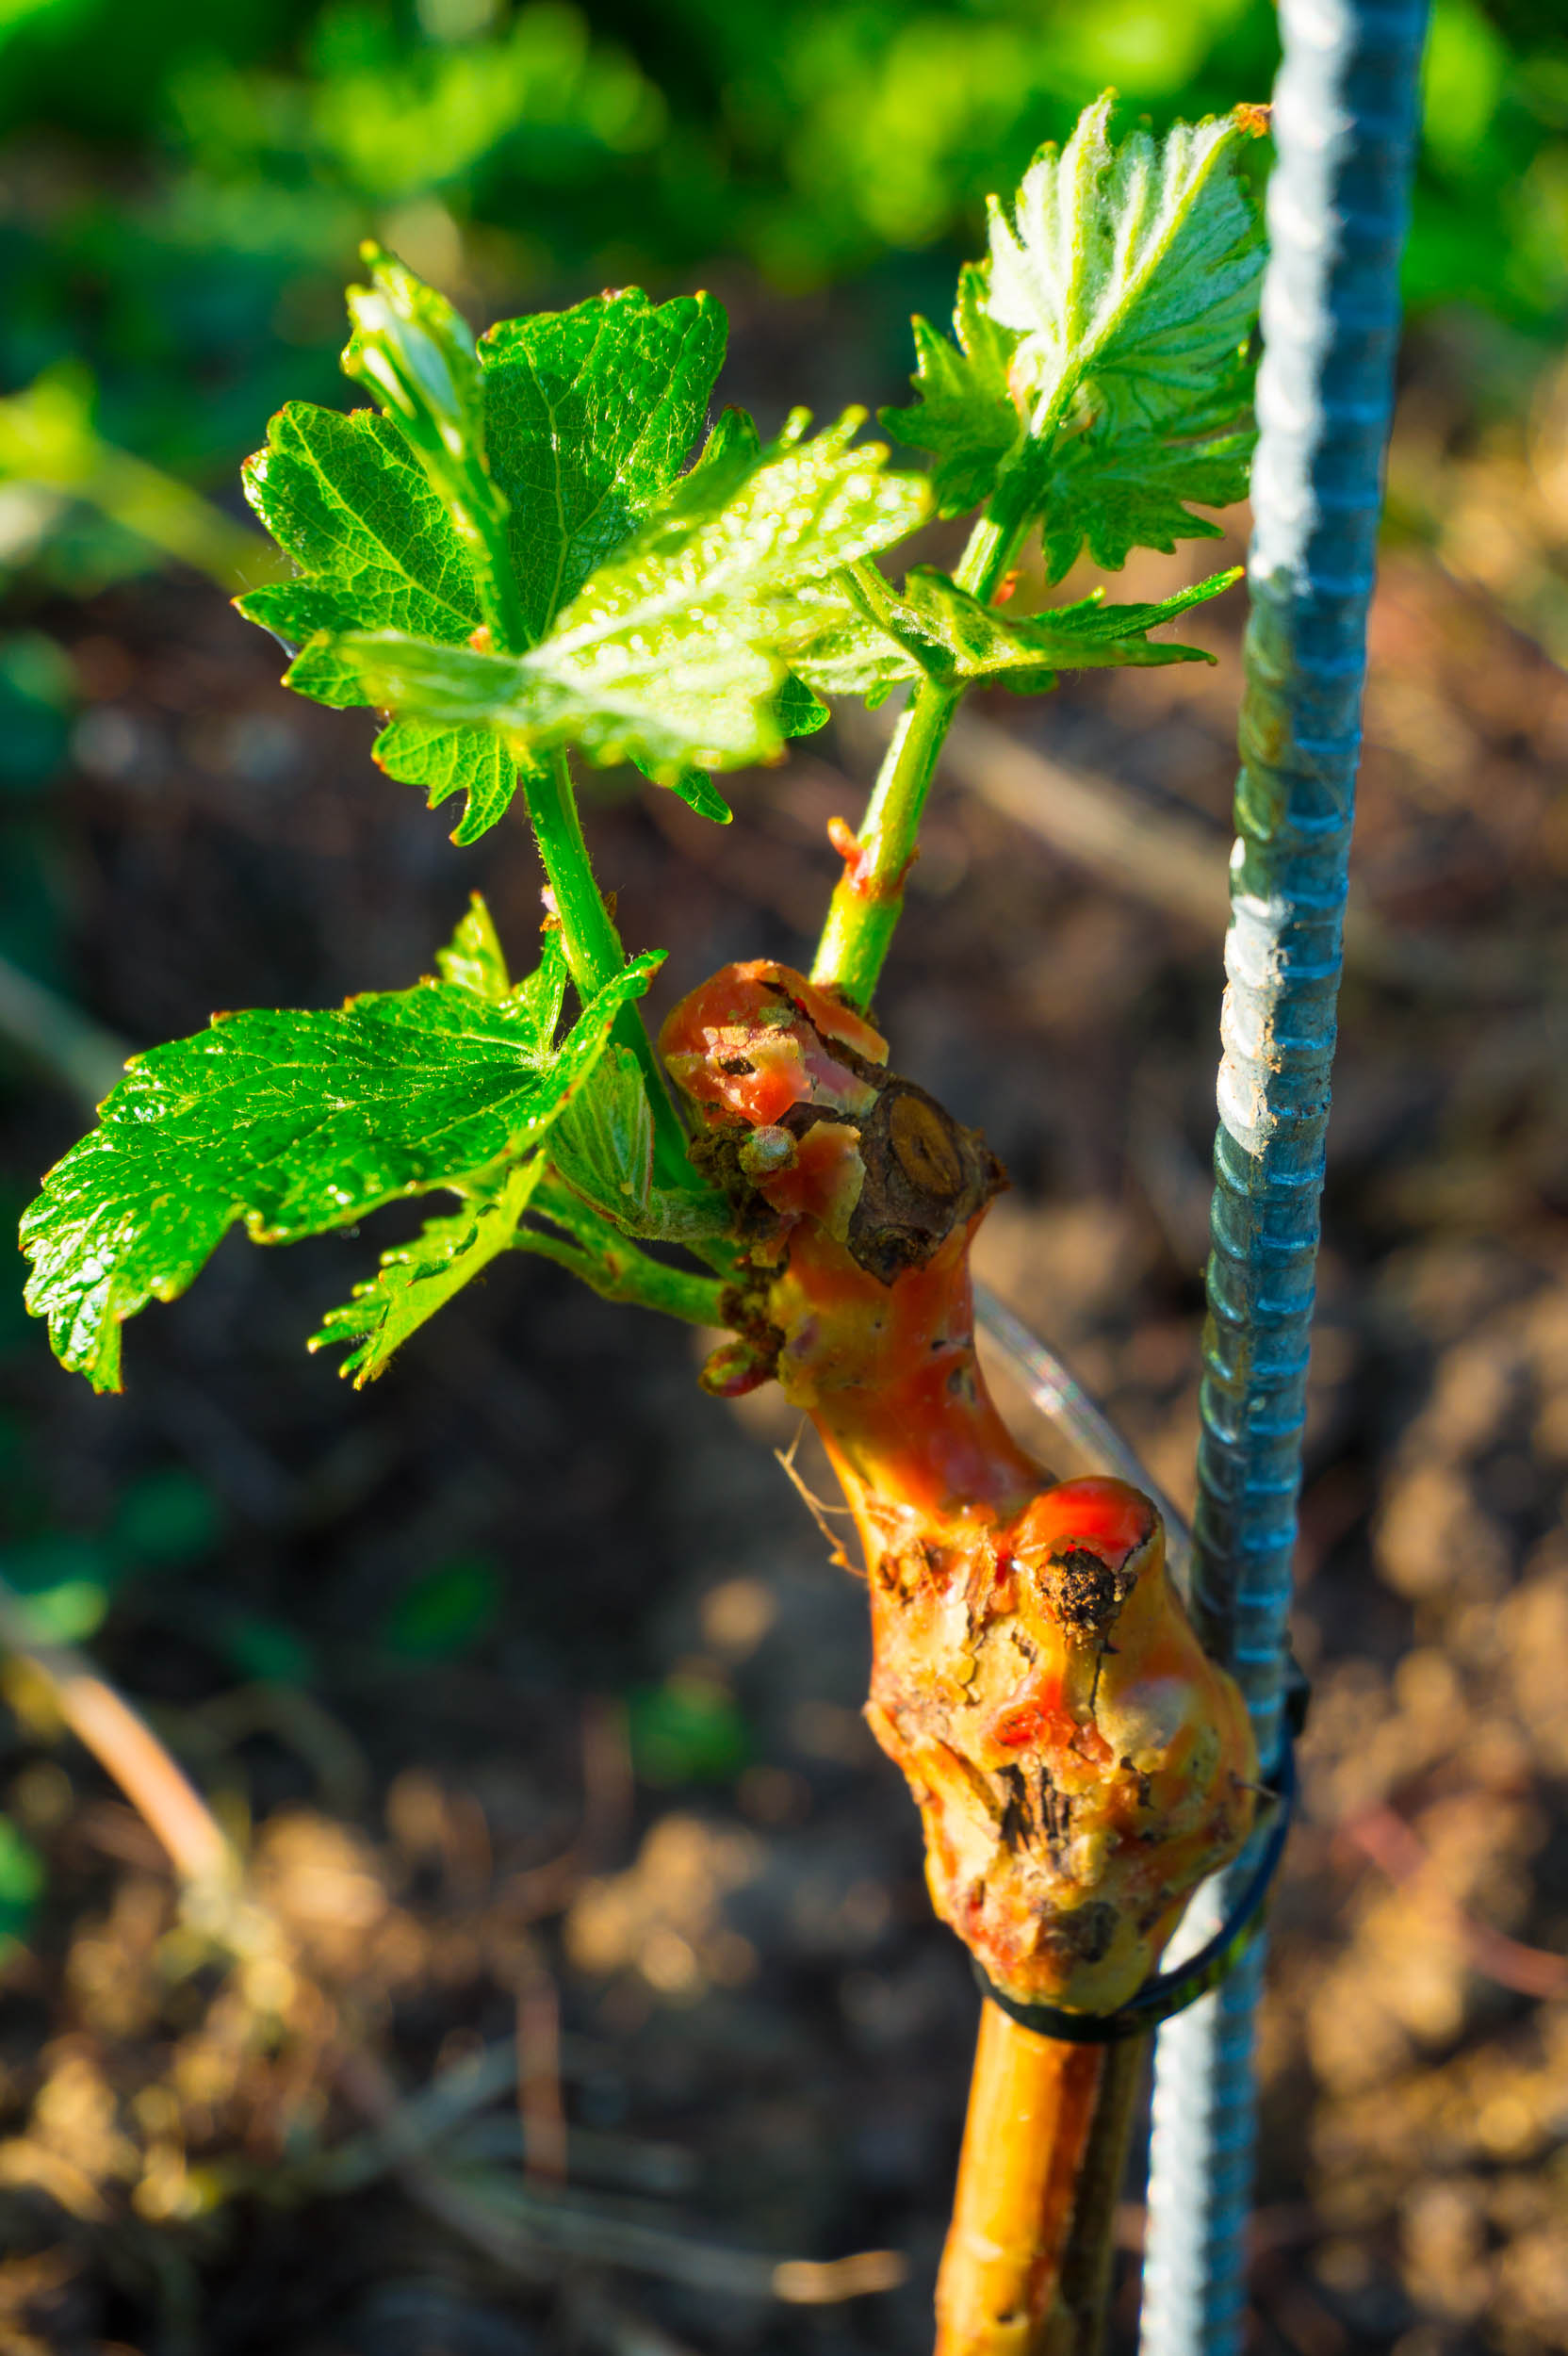 Meopham-Valley-Vineyard-Grapes-Vines-Buds-2